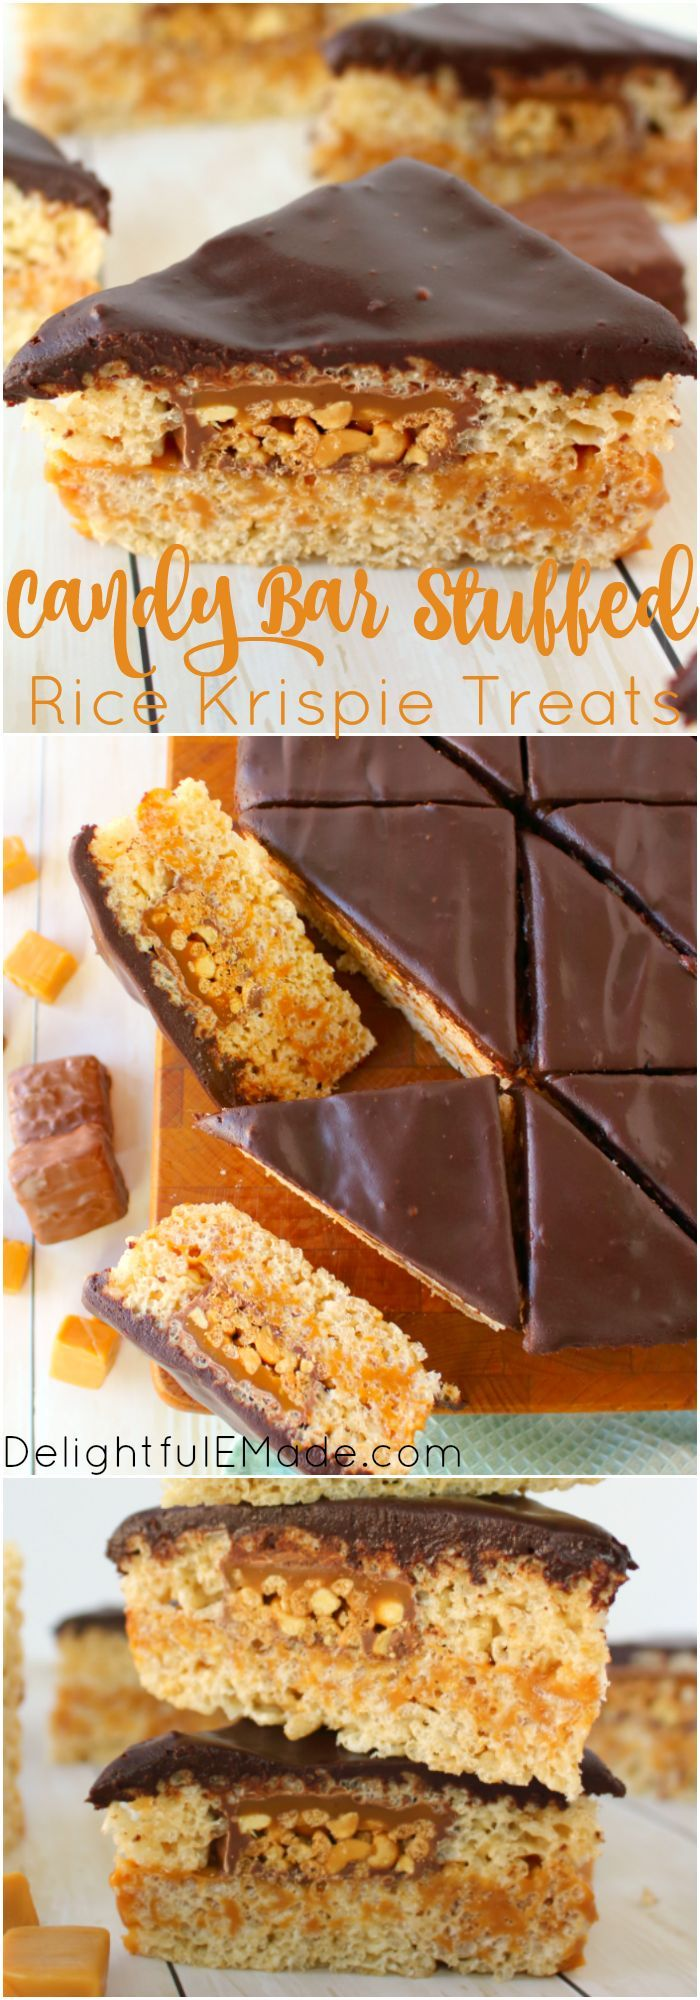 Cereal treats brought to a whole new glorious level! These Candy Bar Stuffed Rice Krispie Treats are loaded with SNICKERS® Crisper bars, gooey caramel, all between layers of marshmallow cereal treats and topped with a thick layer of chocolate! These bars are the ultimate game time treat! #ad #SweetSquad @Walmart